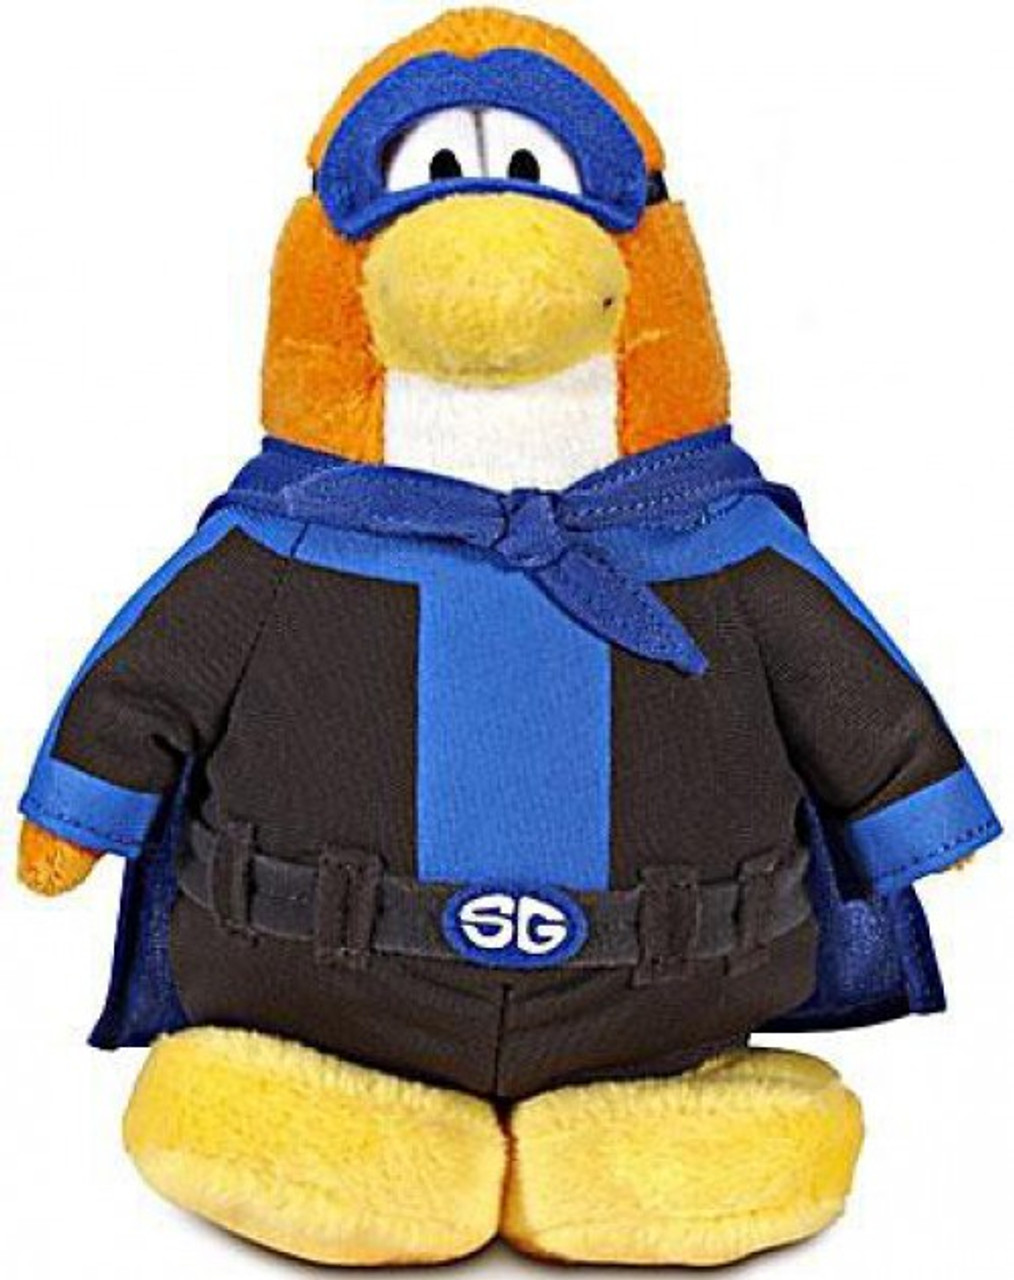 Disney Club Penguin 6.5 Inch Series 8 Plush Figure Girl Soccer Player Includes Coin with Code Jakks